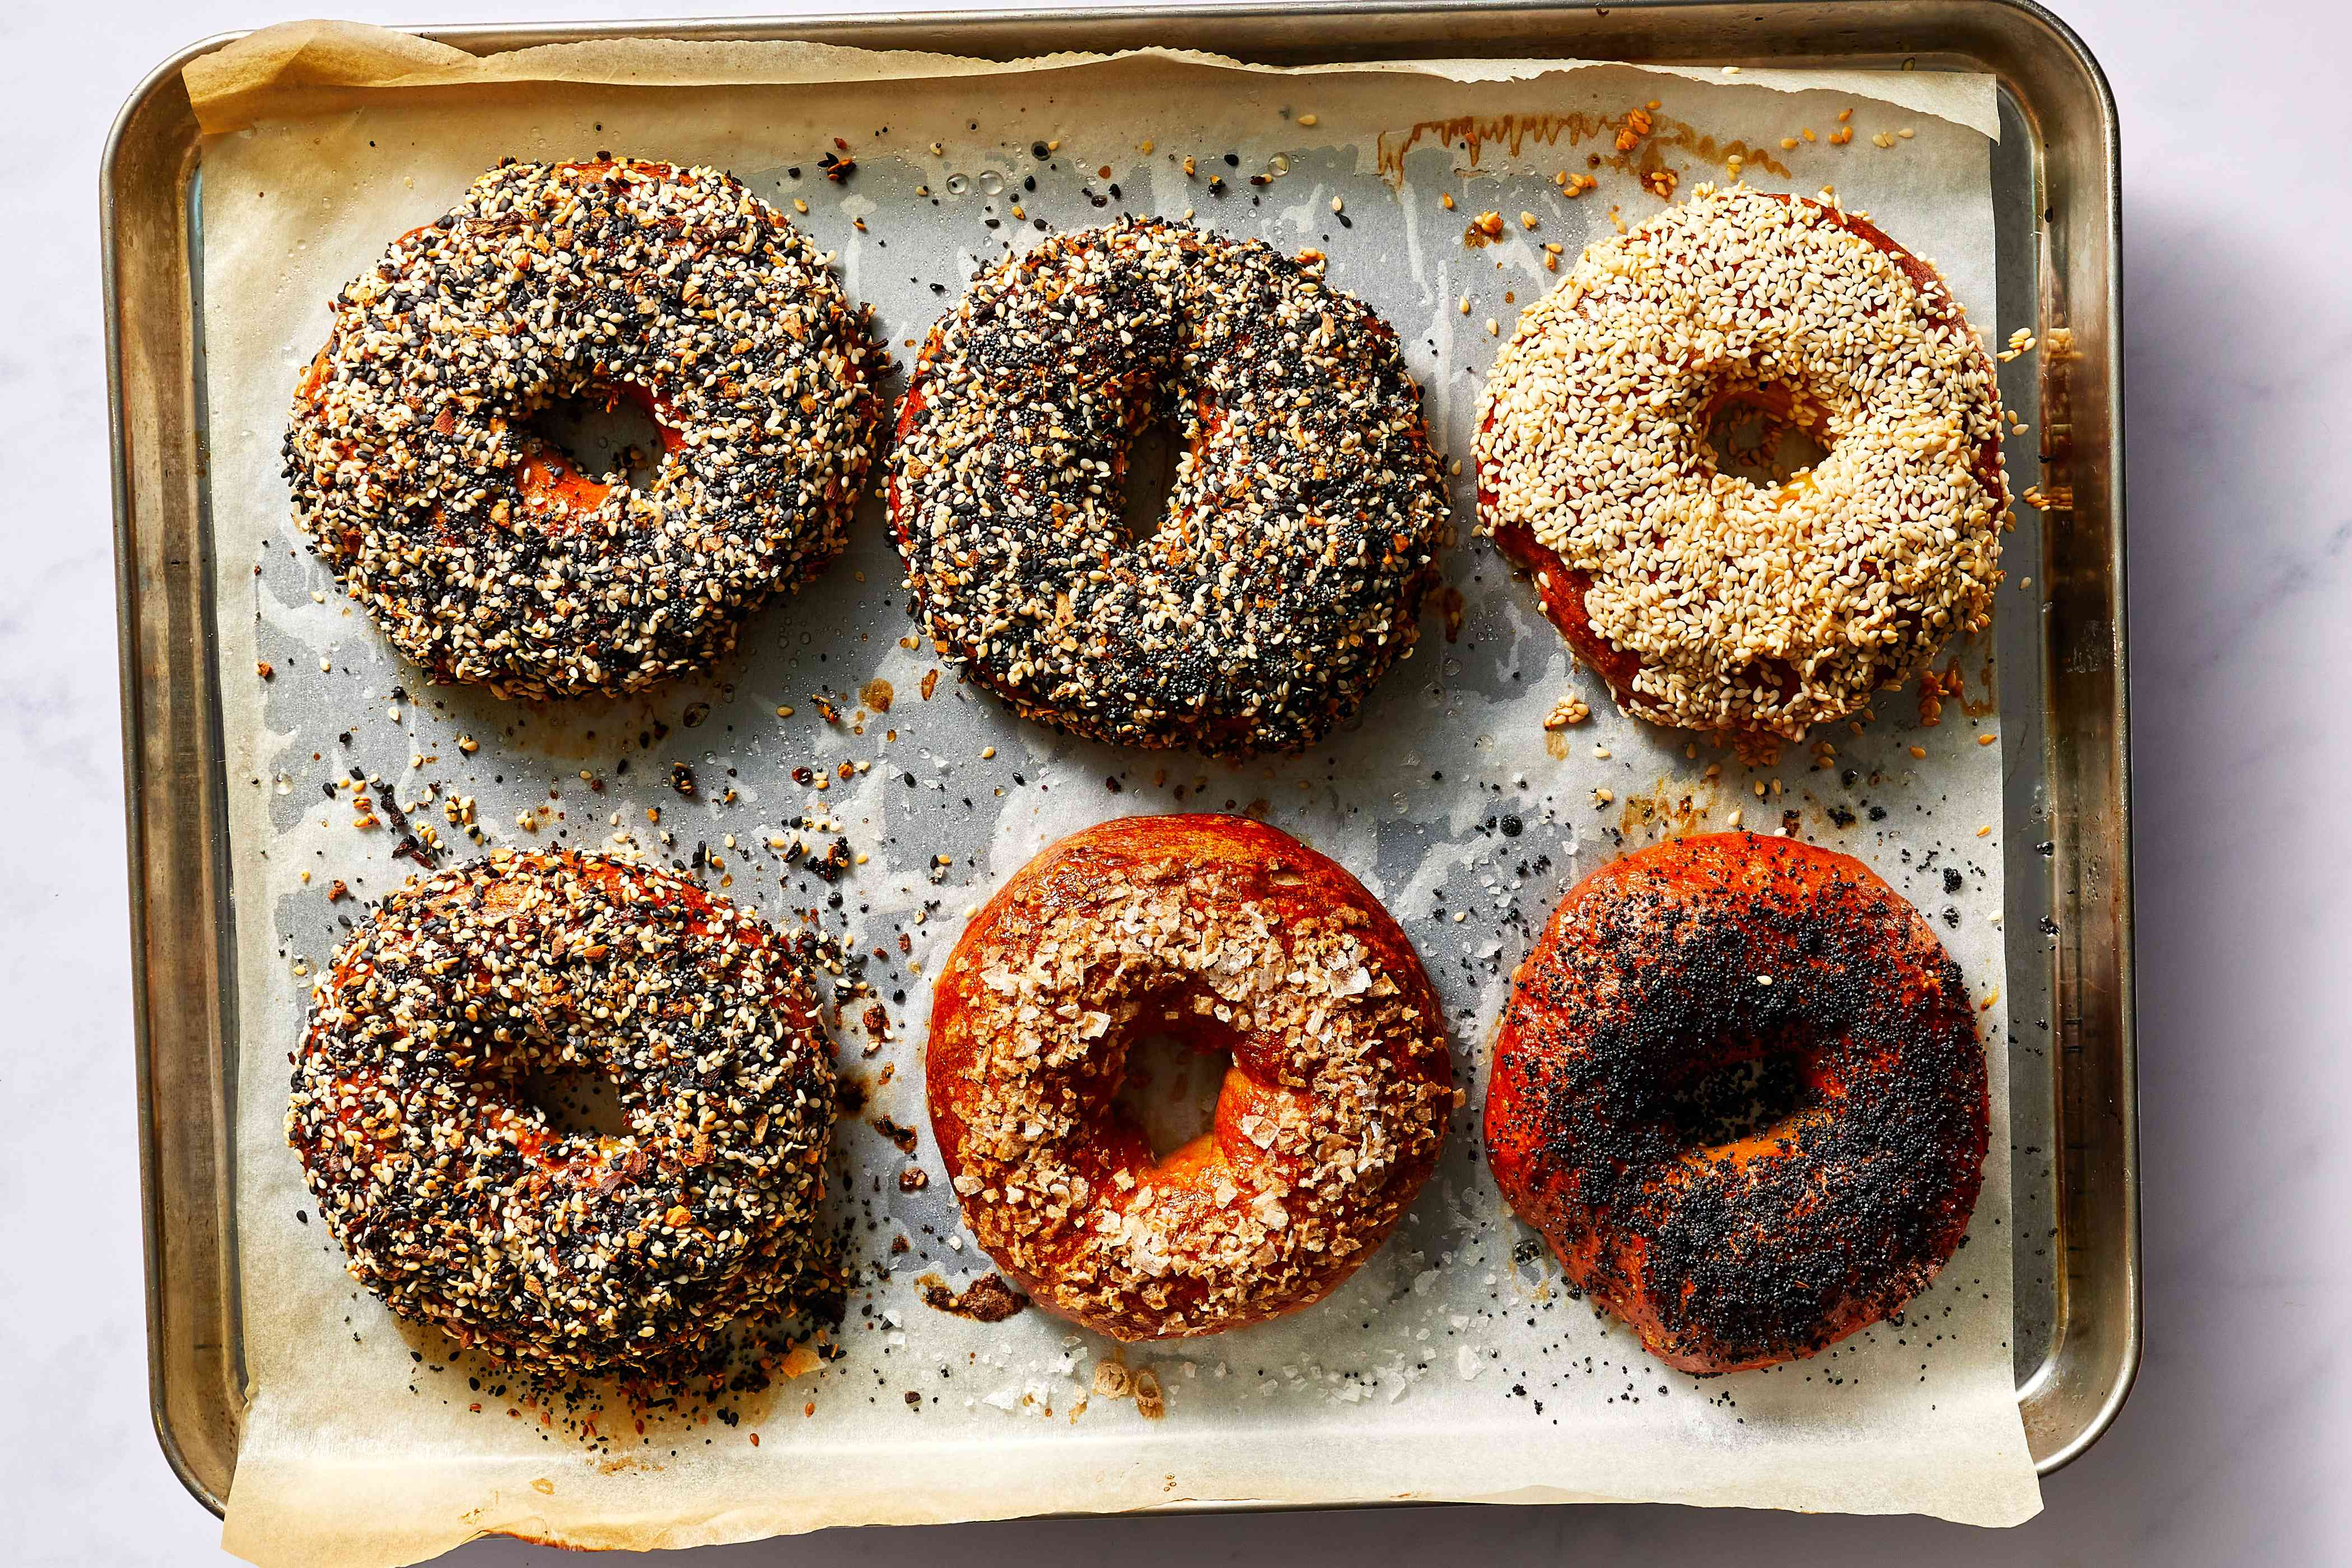 baked bagels on a baking sheet